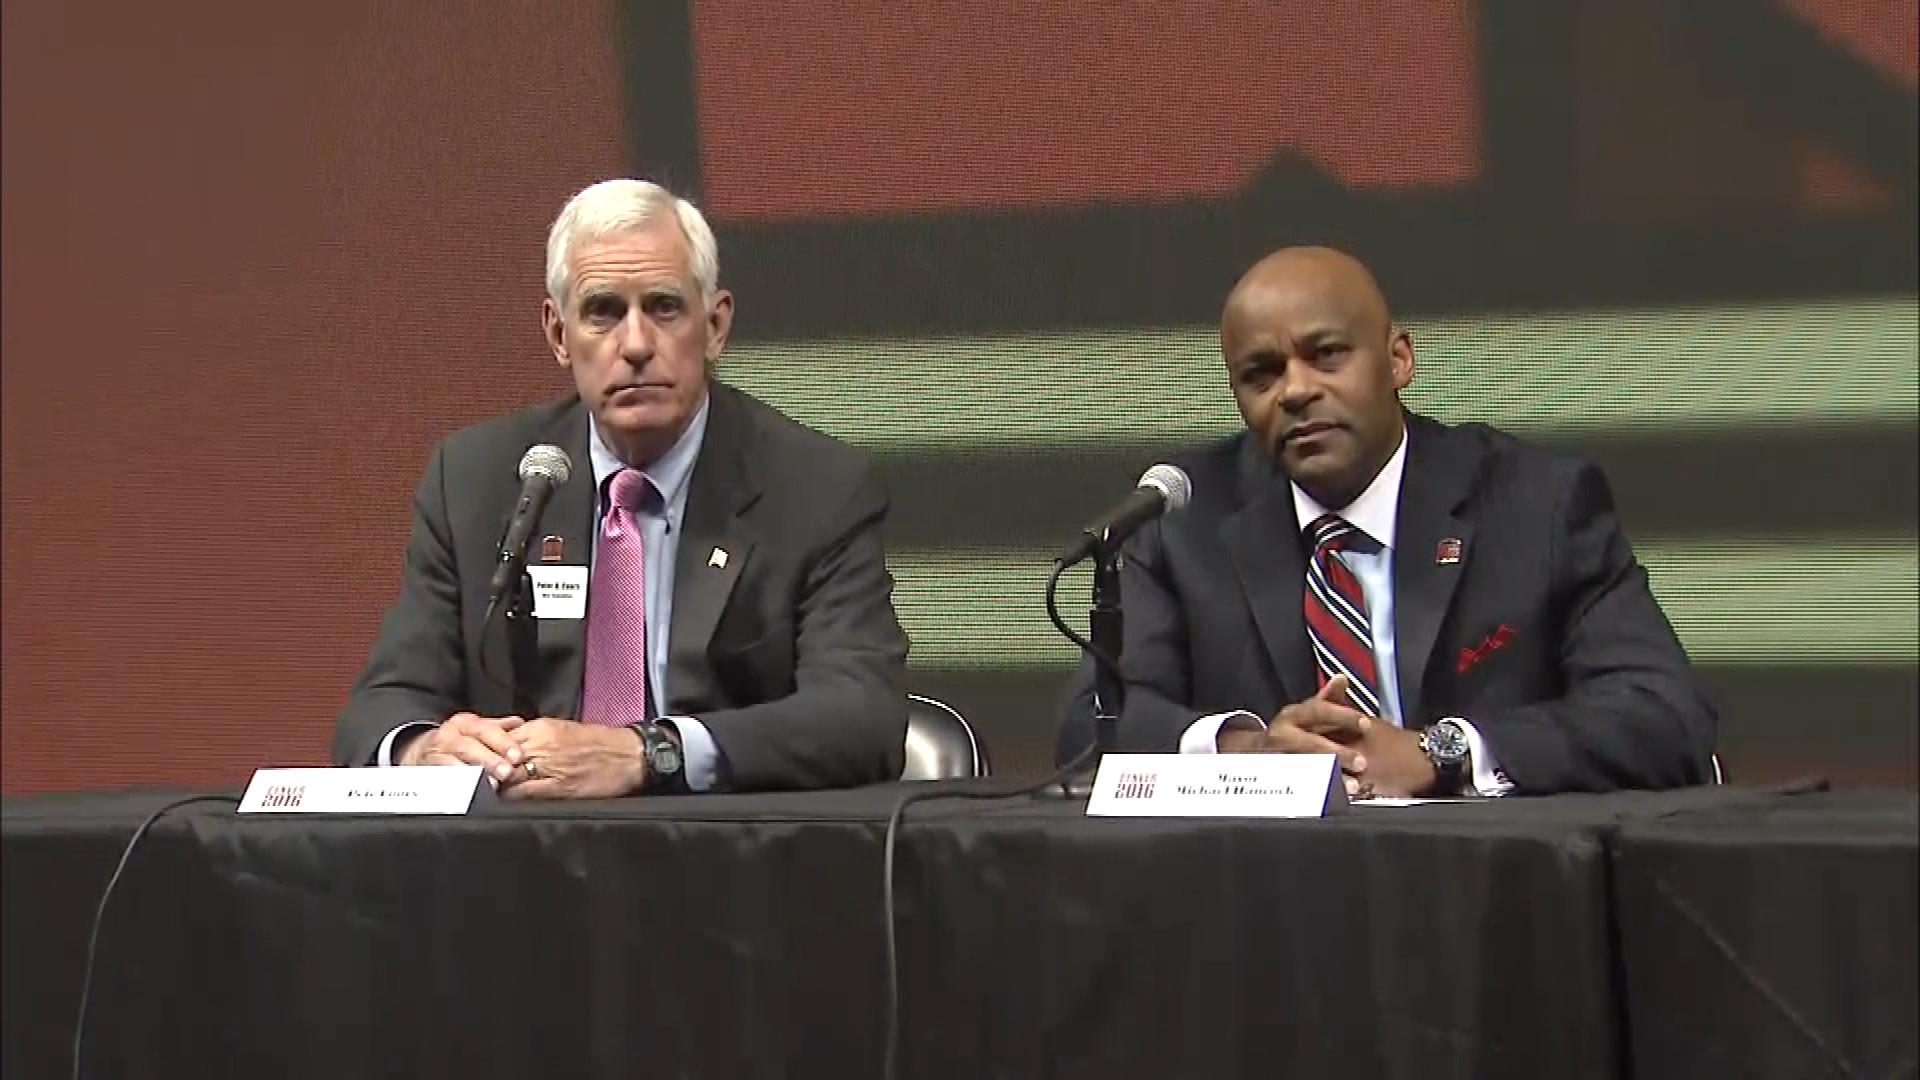 Pete Coors, left, and Denver Mayor Michael Hancock were part of the bipartisan team that tried to bring the RNC to Denver. (credit: CBS)